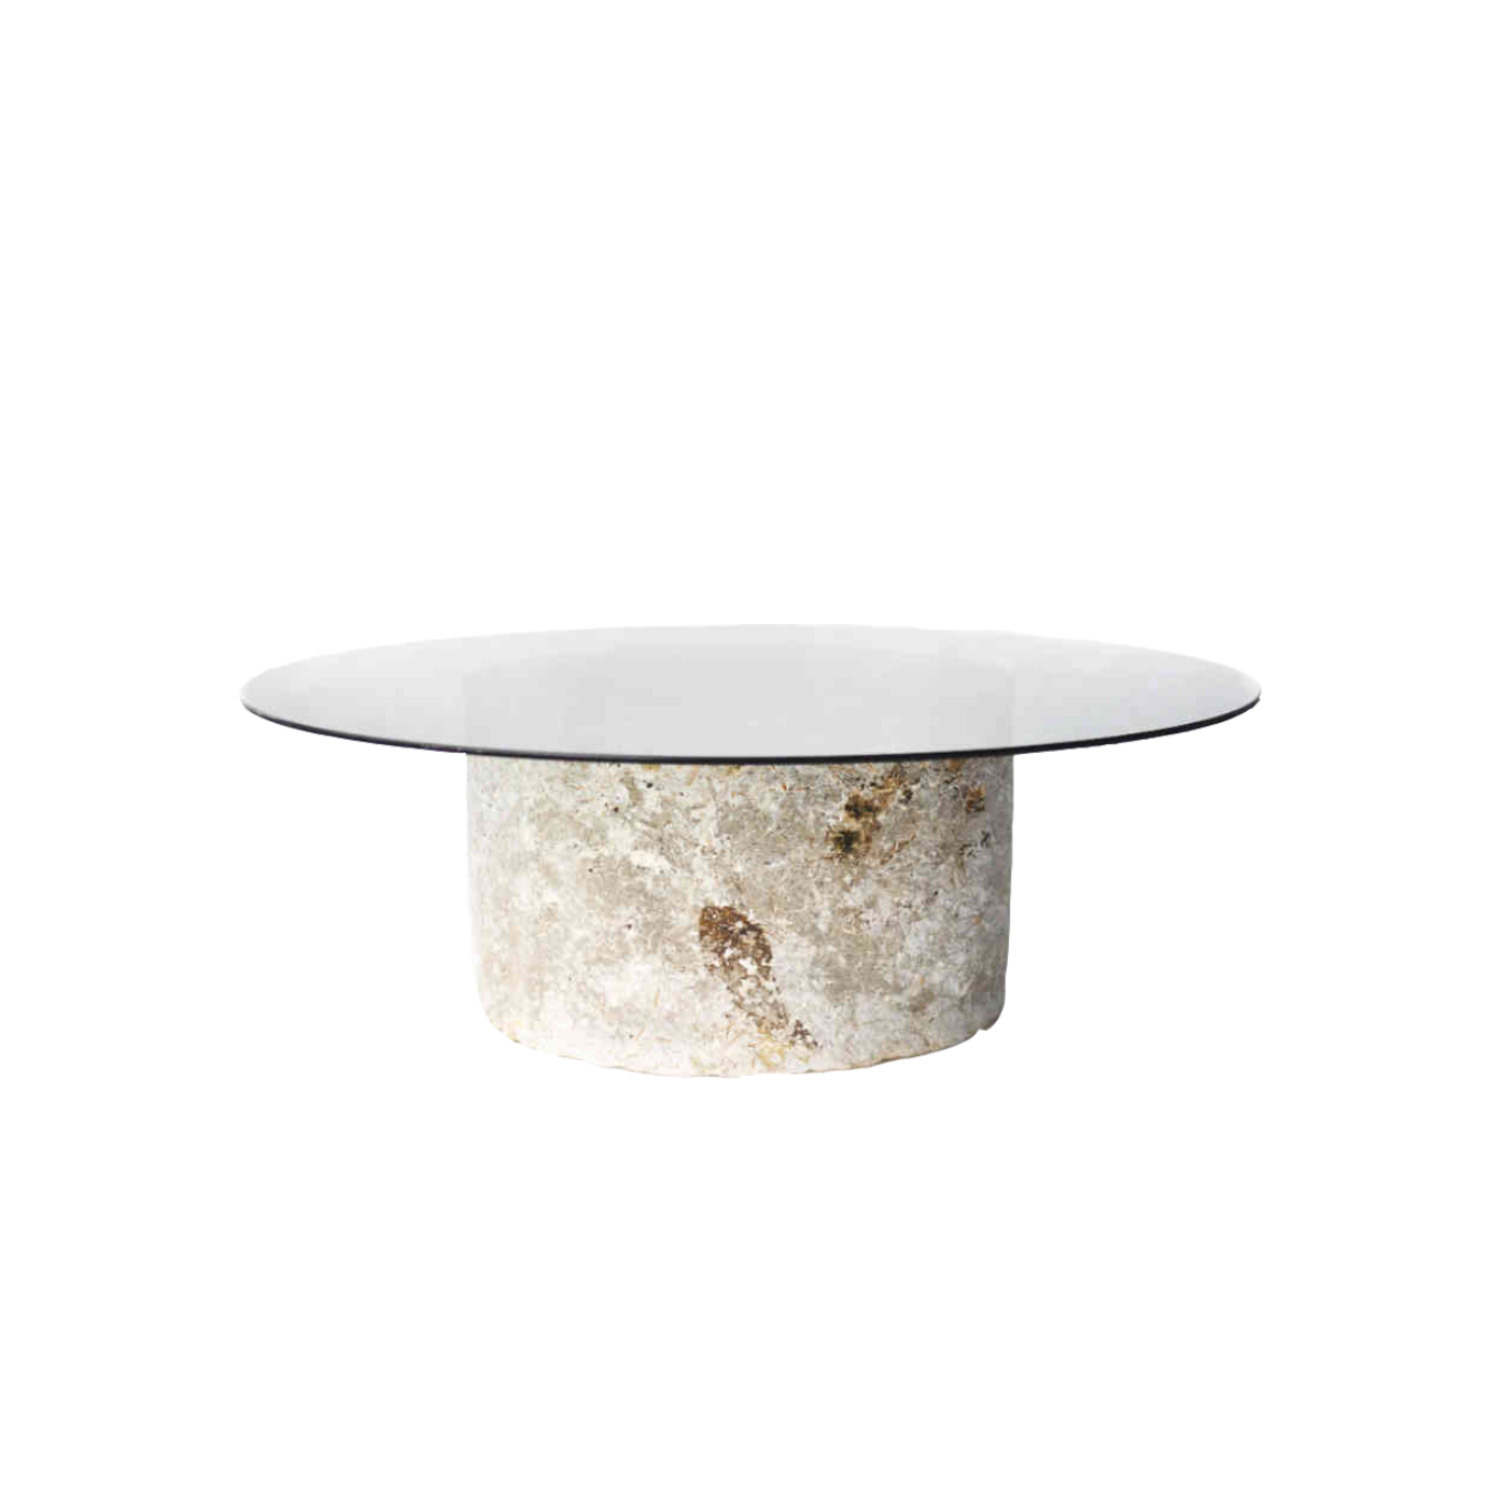 Mycelium Table - Mycelial Table, grown on demand. The glass tabletop is resting on a strong grown mycelial ring. The glass table plate has a diameter of 90cm and a thickness of 8 mm. The wall thickness for the Mycelium base for the table is  7cm. The table is available in different heights and the glass top can be purchased separately. | Matter of Stuff